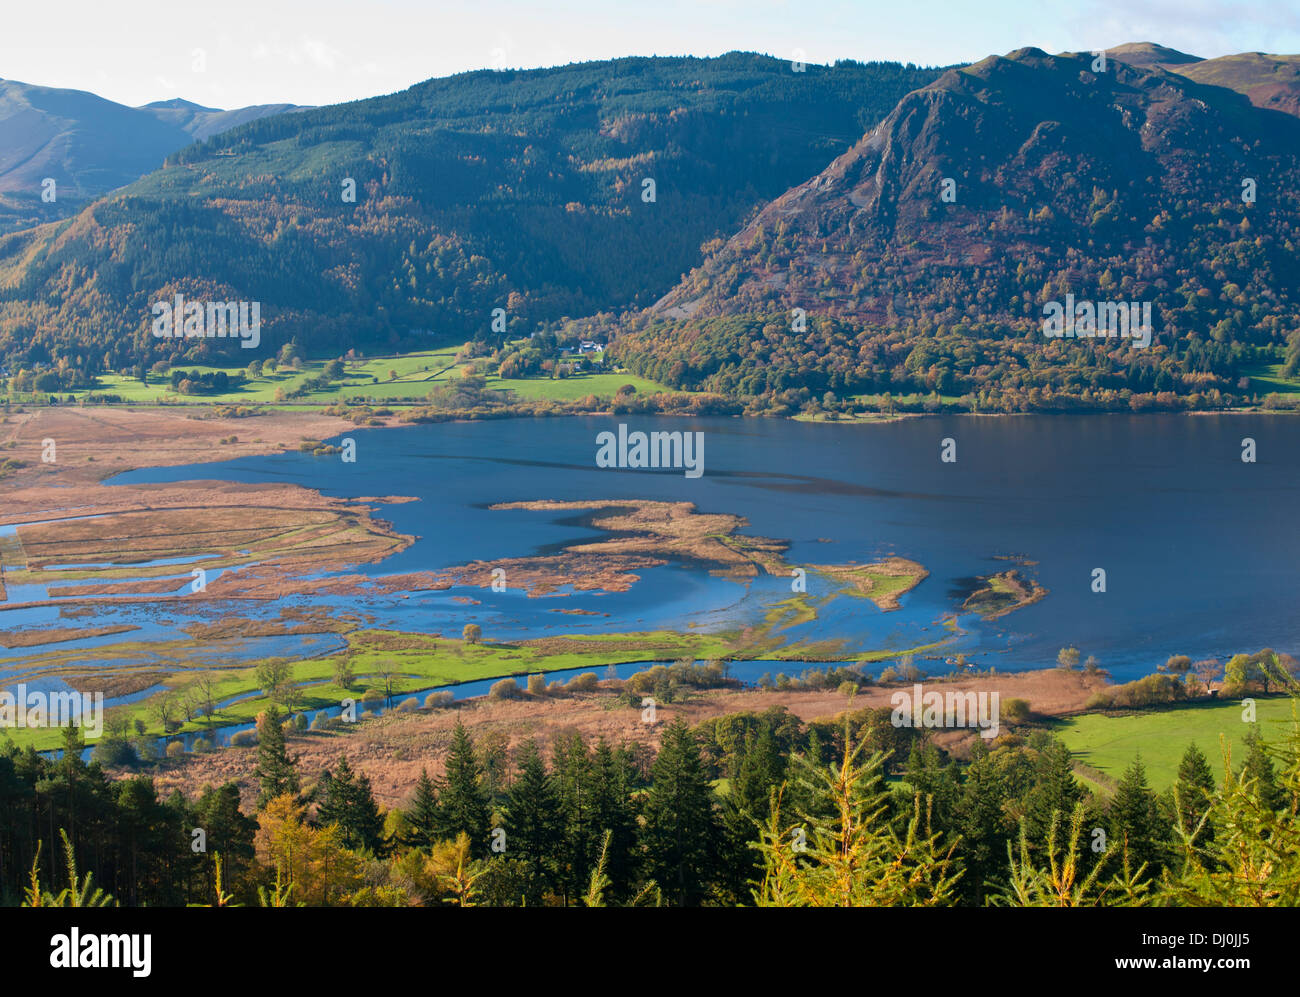 View across Lake Bassenthwaite from the upper slopes of Dodd Wood to Barf, Thornthwaite Forest behind, Autumn, Lake District, UK - Stock Image